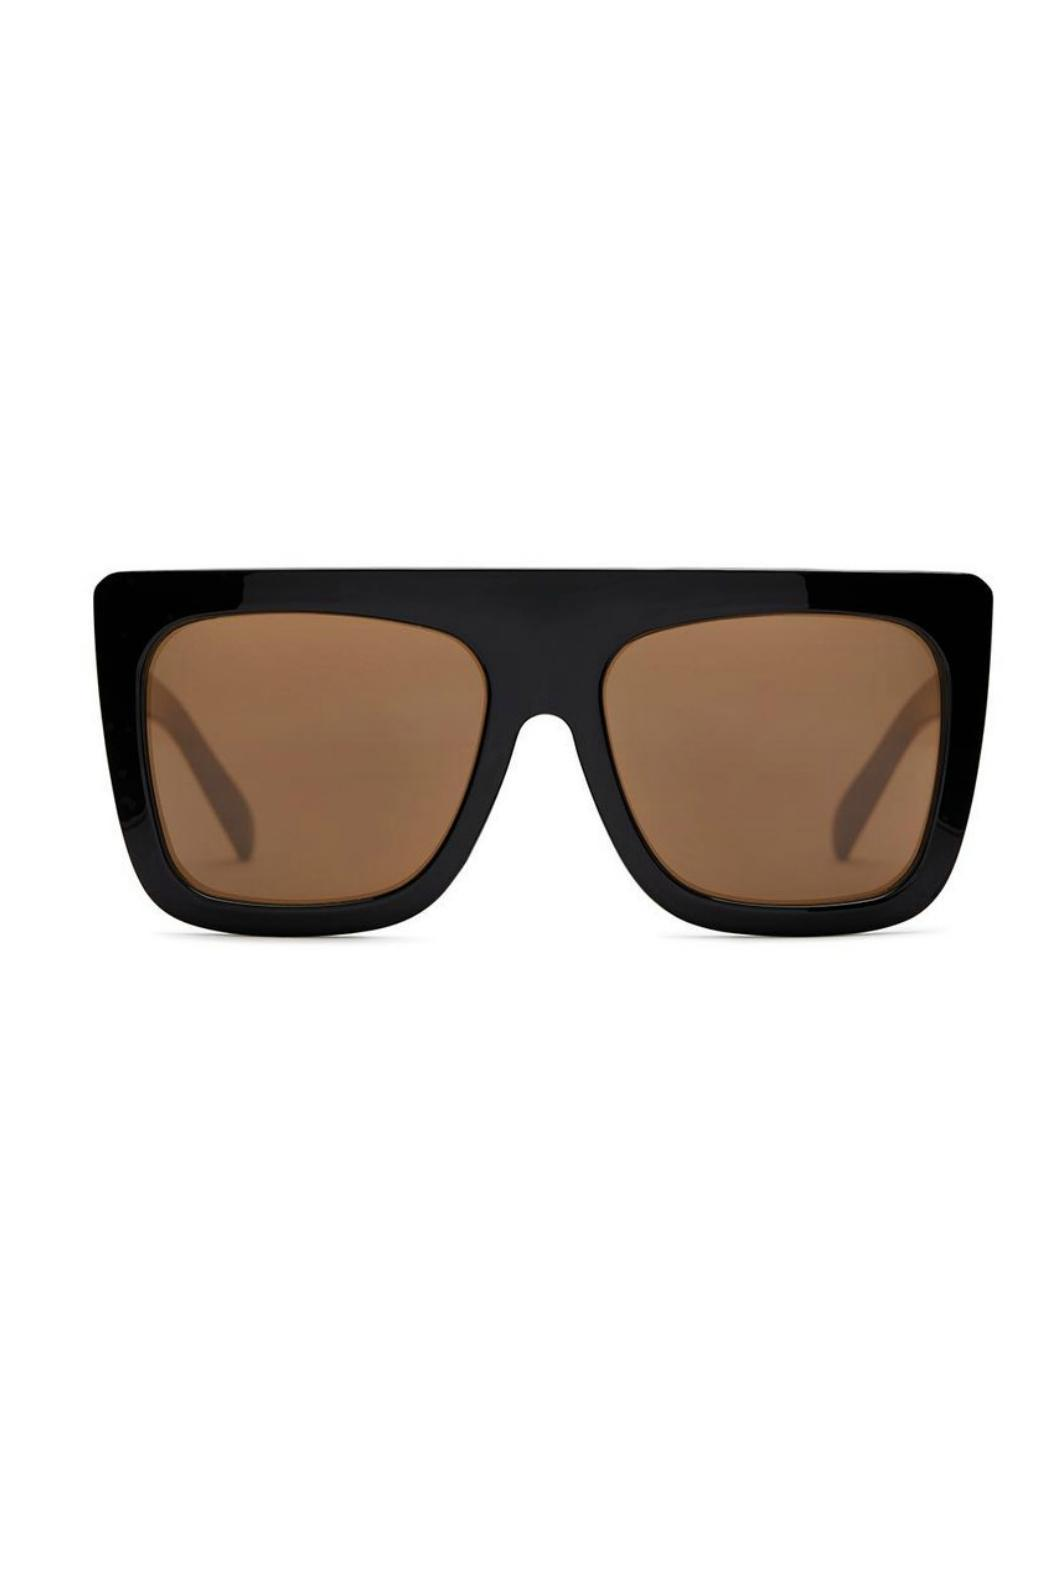 5f8e5958dce Quay Australia Cafe Racer Sunnies from Texas by POE and Arrows ...